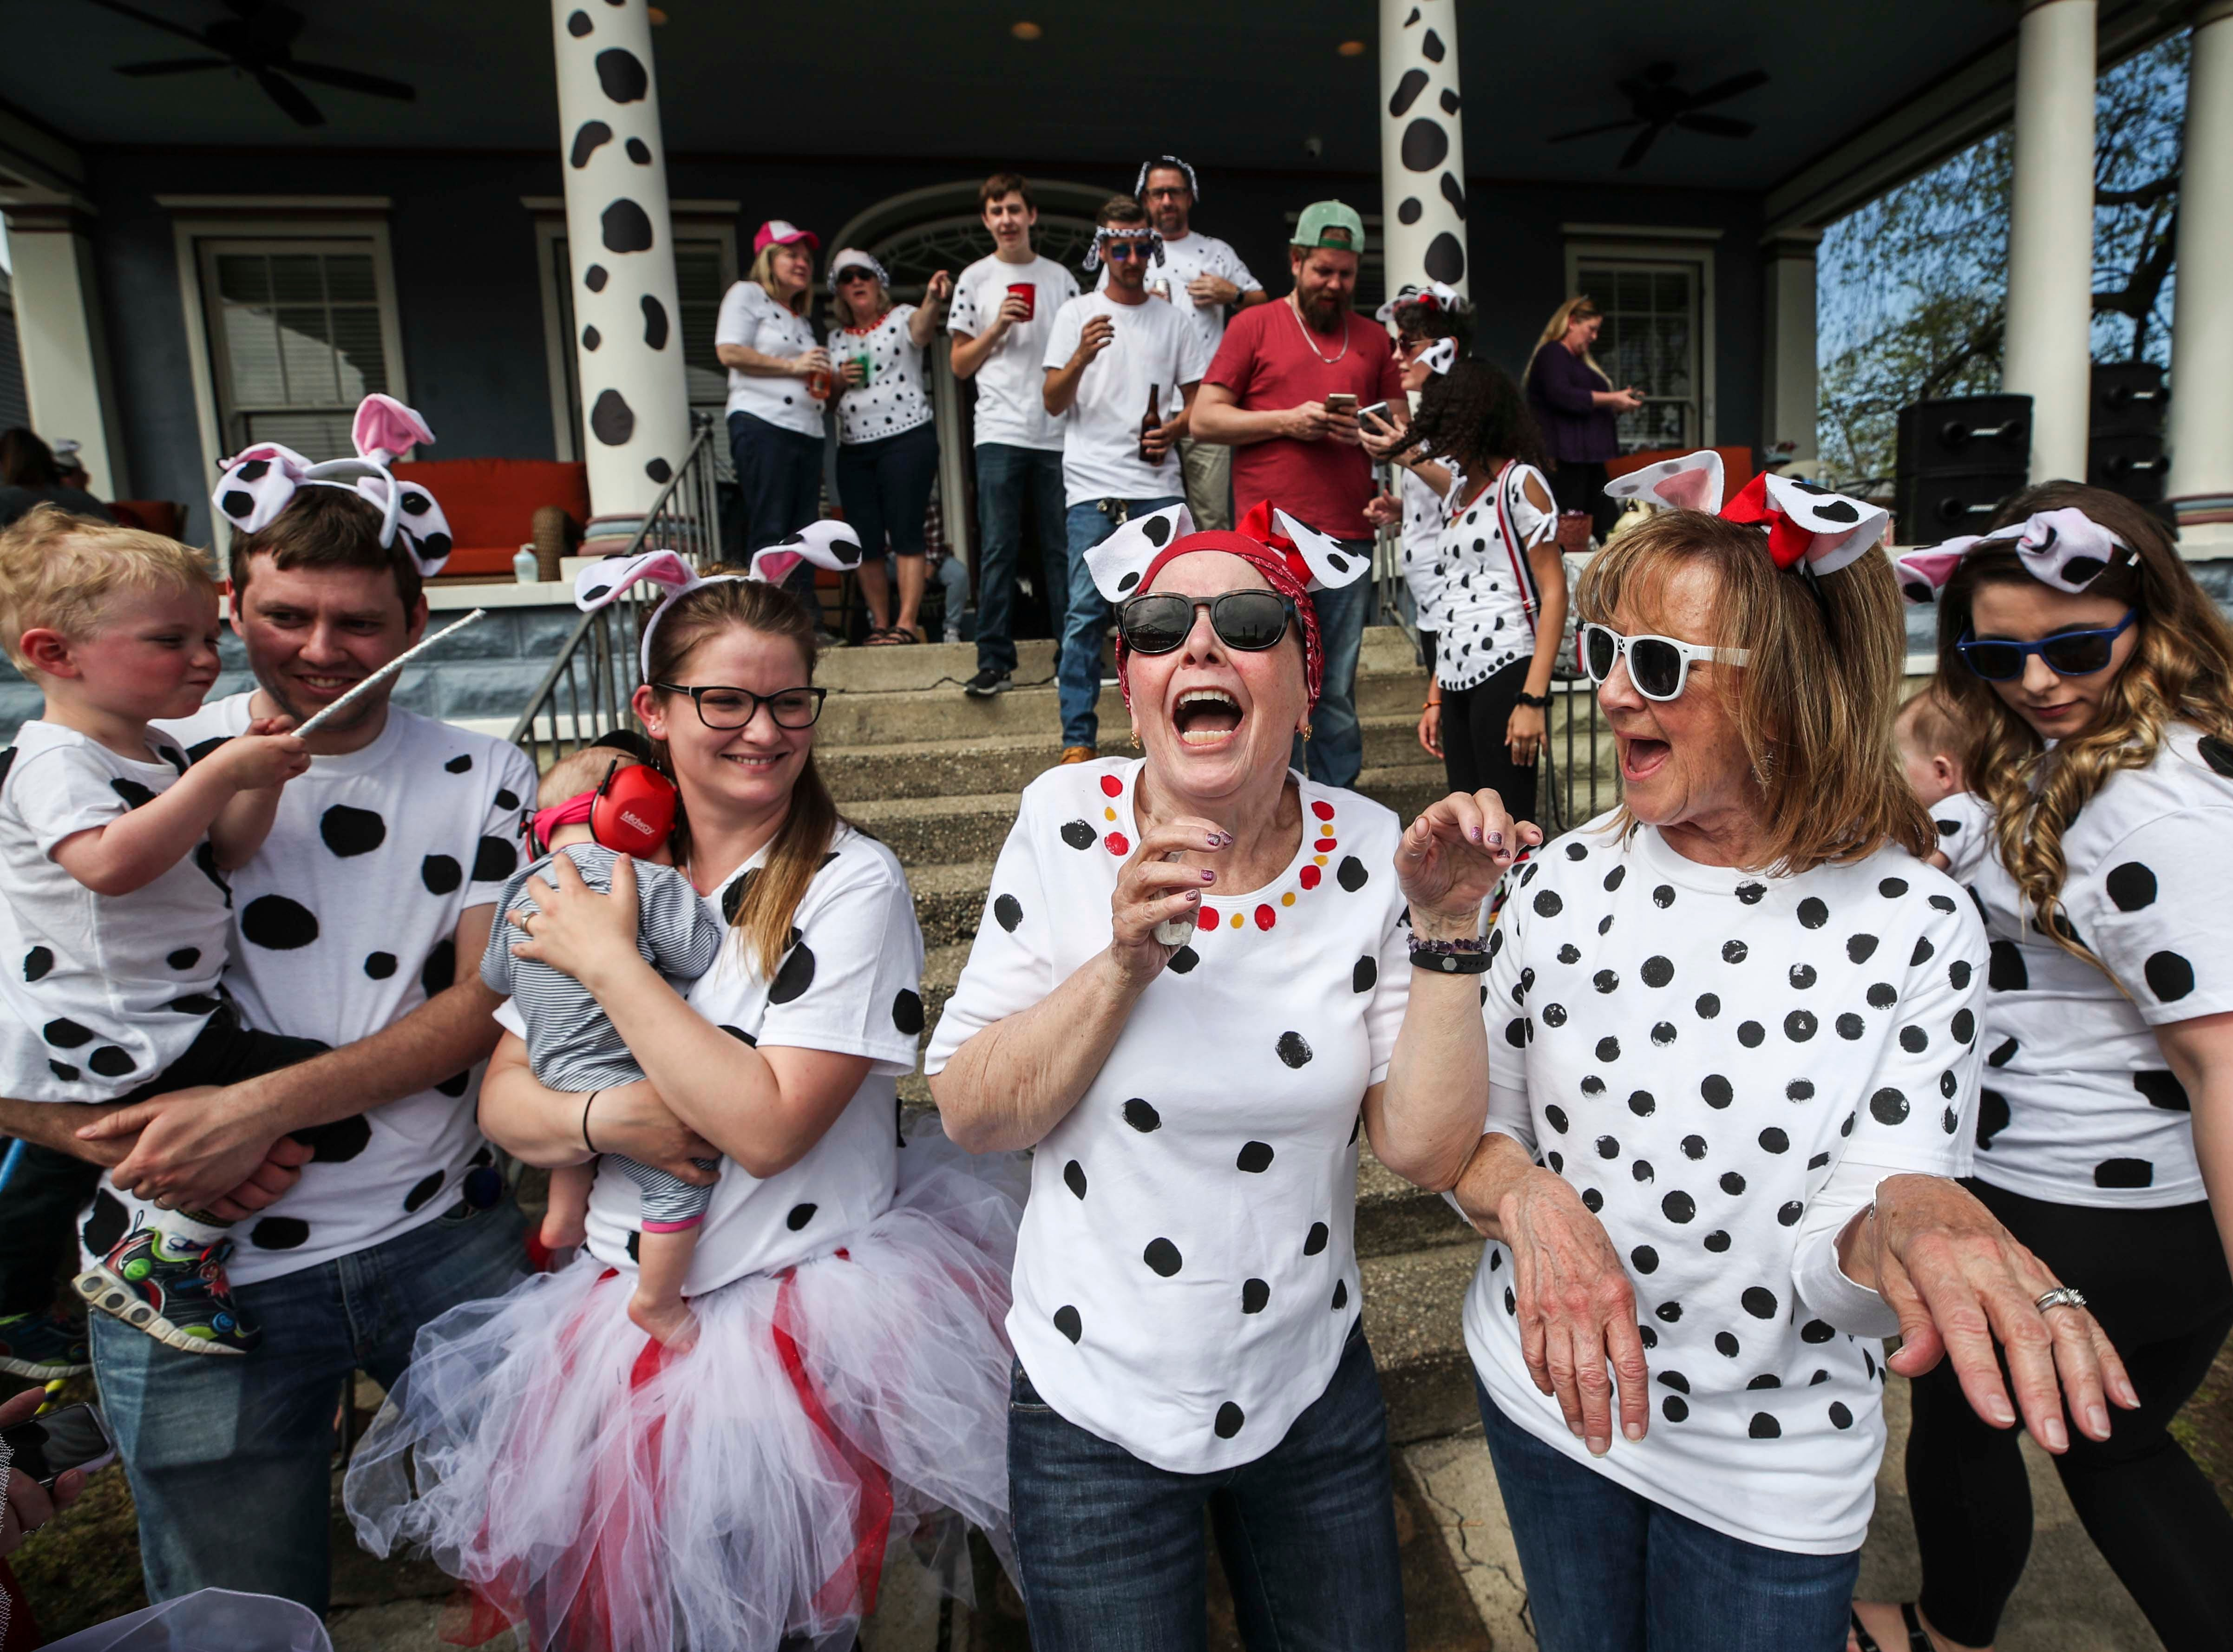 It was a 101 Dalmatian-themed party at the Boome residence near the Big Four Bridge in Jeffersonville during 2019 Thunder Over Louisville. April 13, 2019